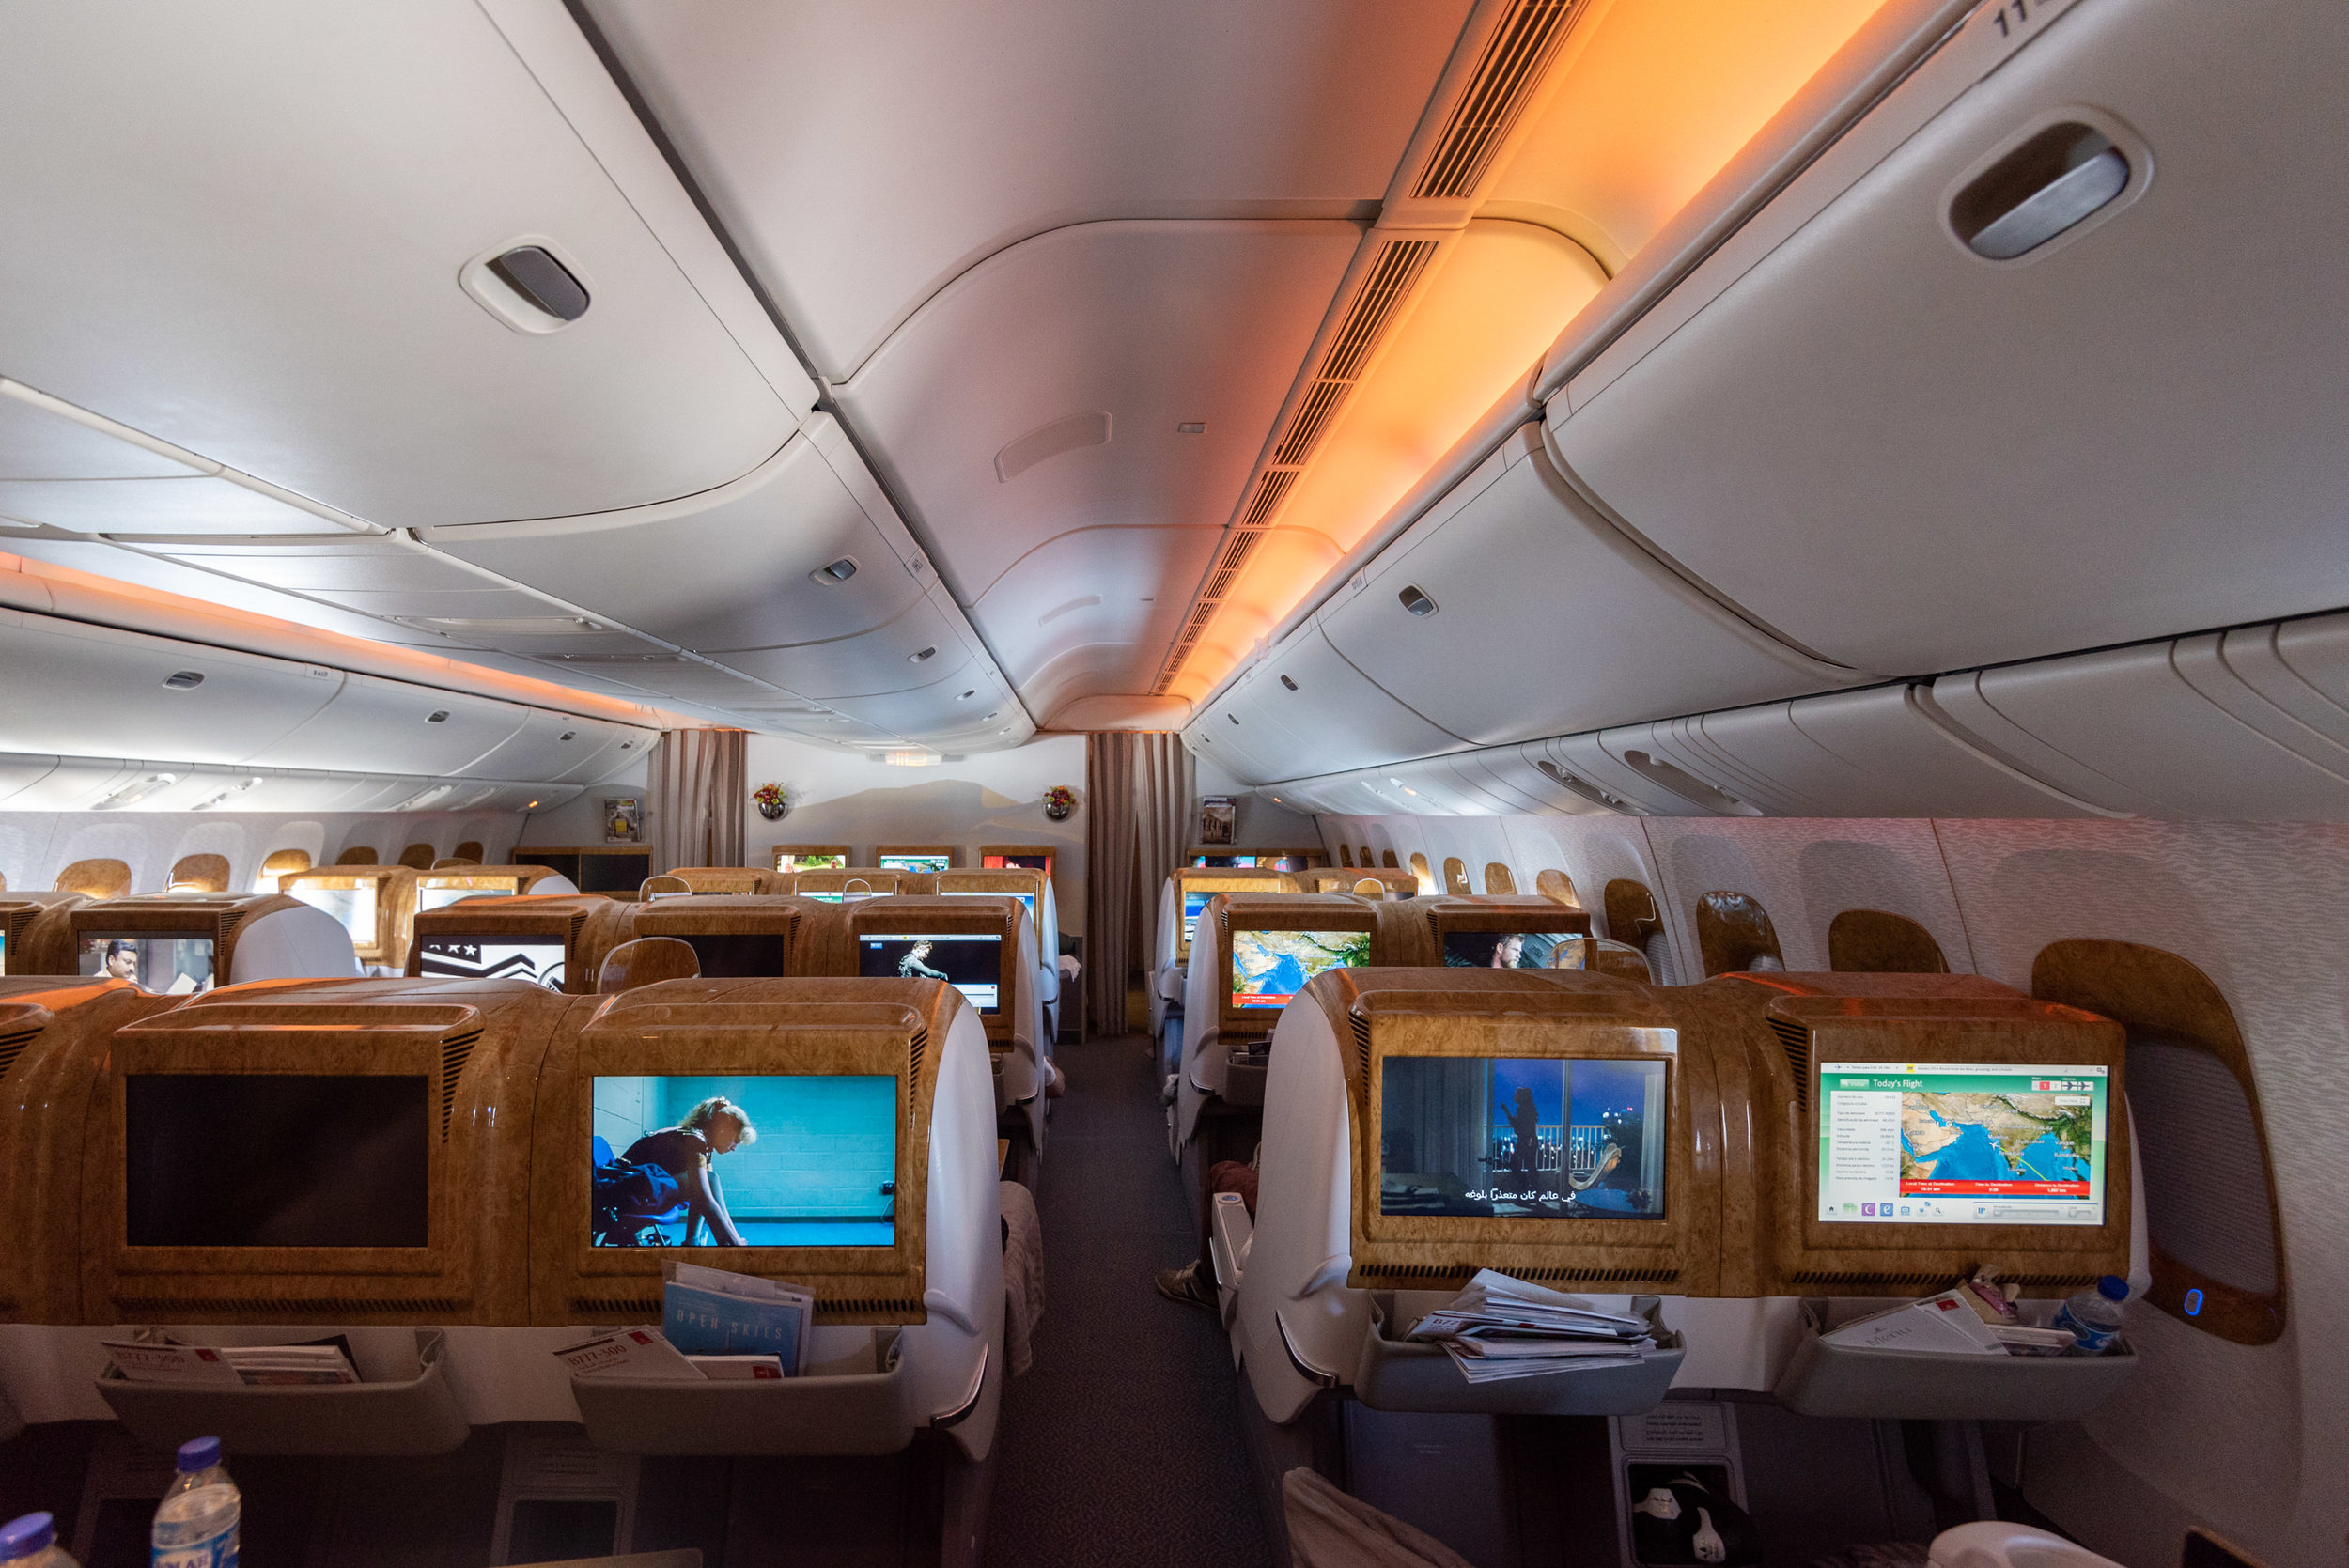 Emirates Business Class - EK433 (SIN-DXB)